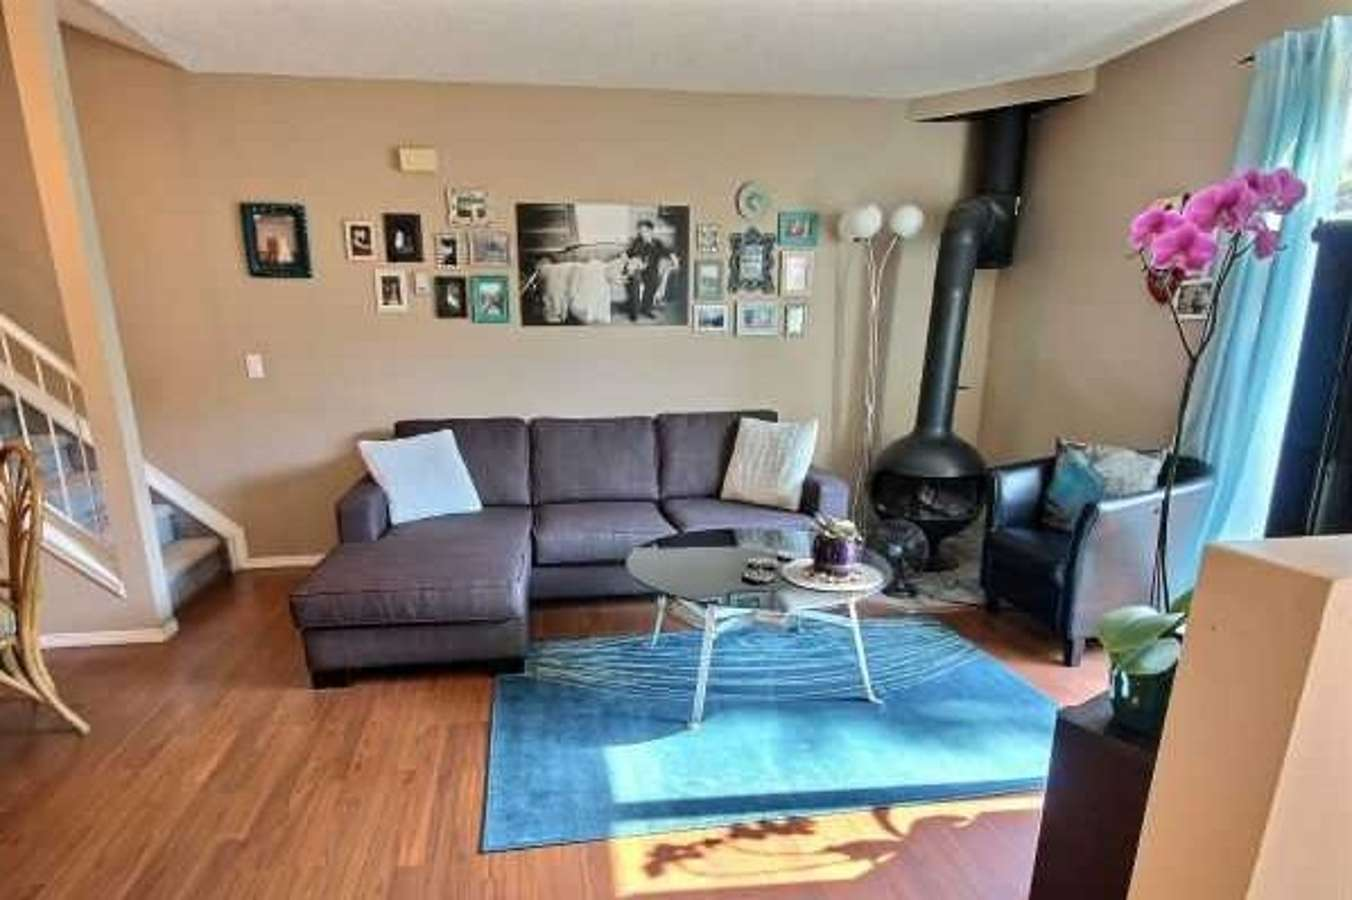 Homestay in Calgary - Find host families in Canada